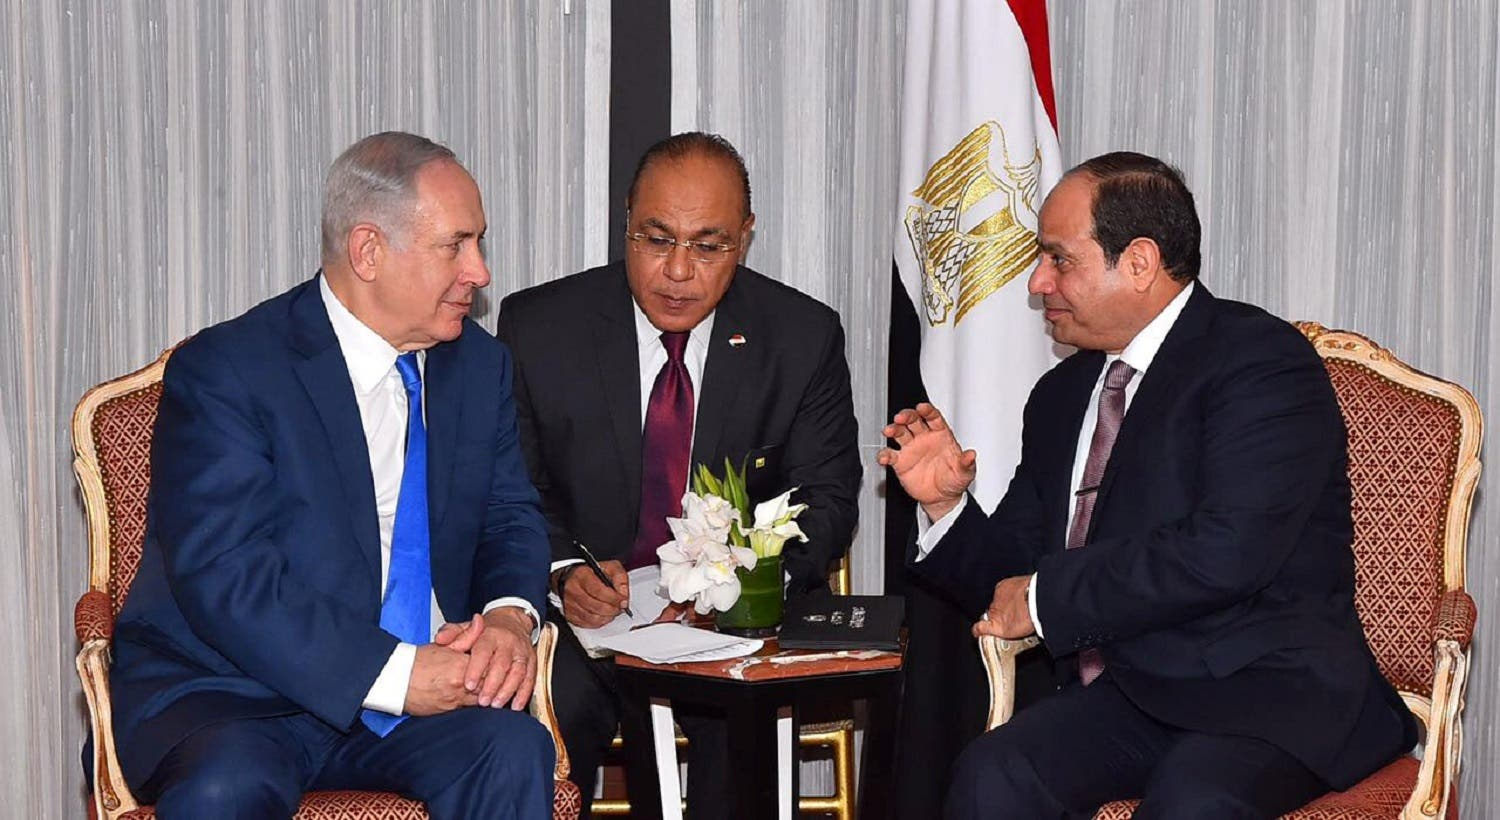 Egyptian President Abdel Fattah al-Sisi (R) speaks with Israeli Prime Minister Benjamin Netanyahu (L) during their meeting as part of an effort to revive the Middle East peace process ahead of the United Nations General Assembly in New York, US, September 19, 2017. (Reuters)